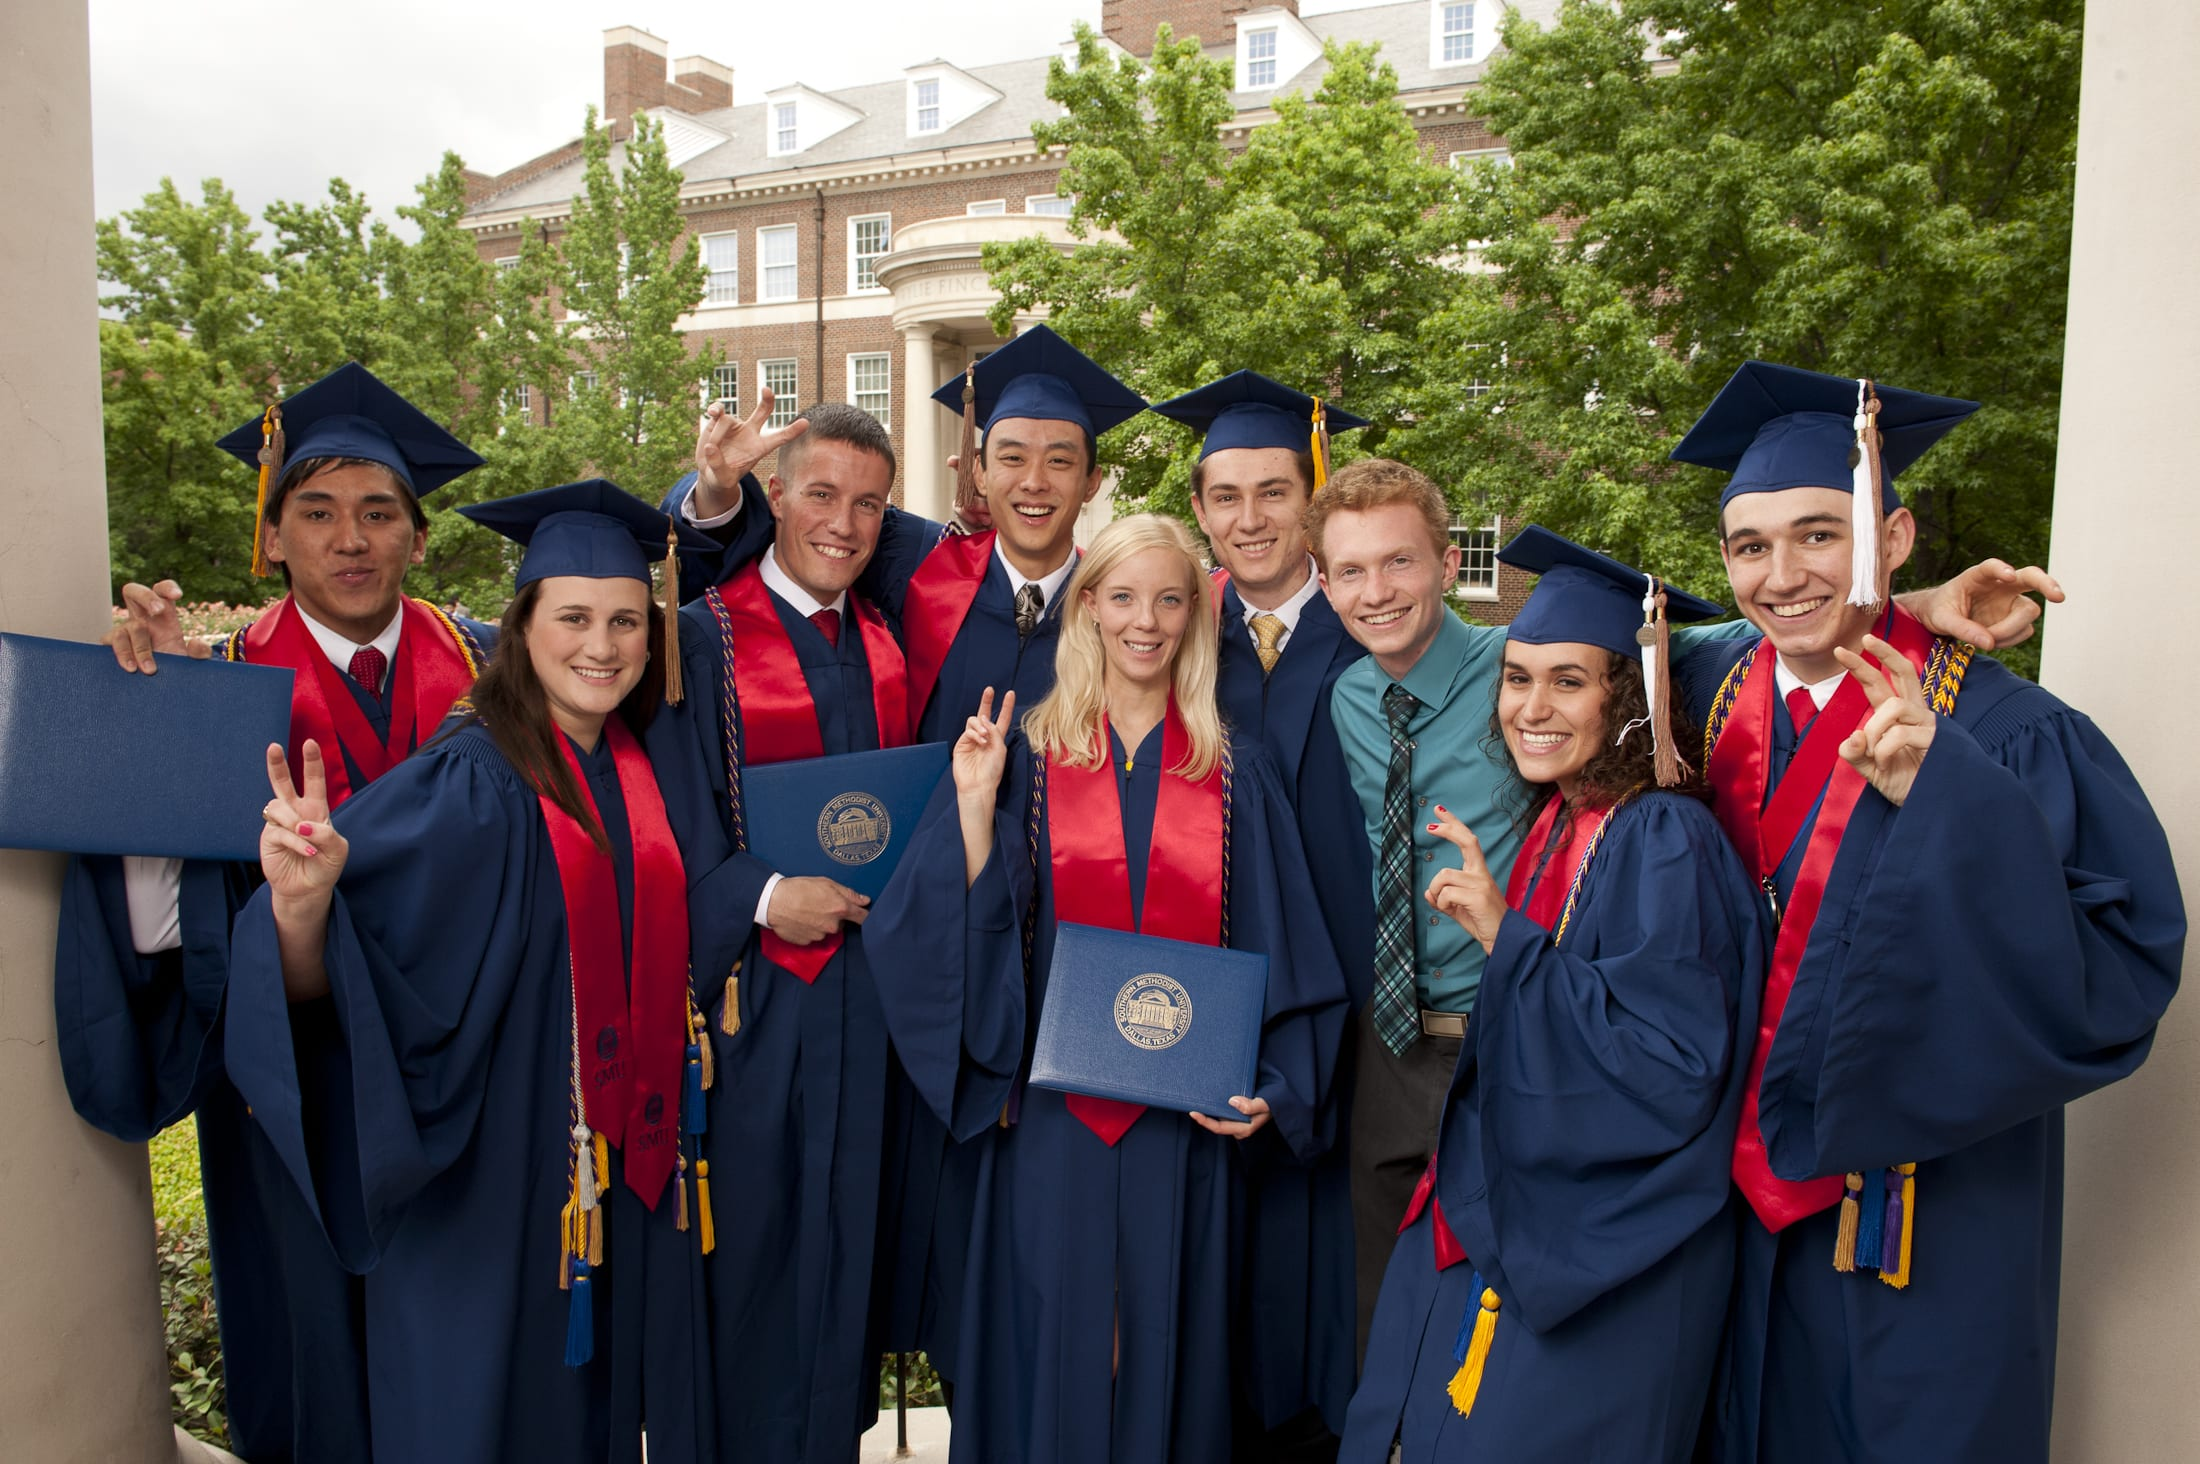 Commencement traditions